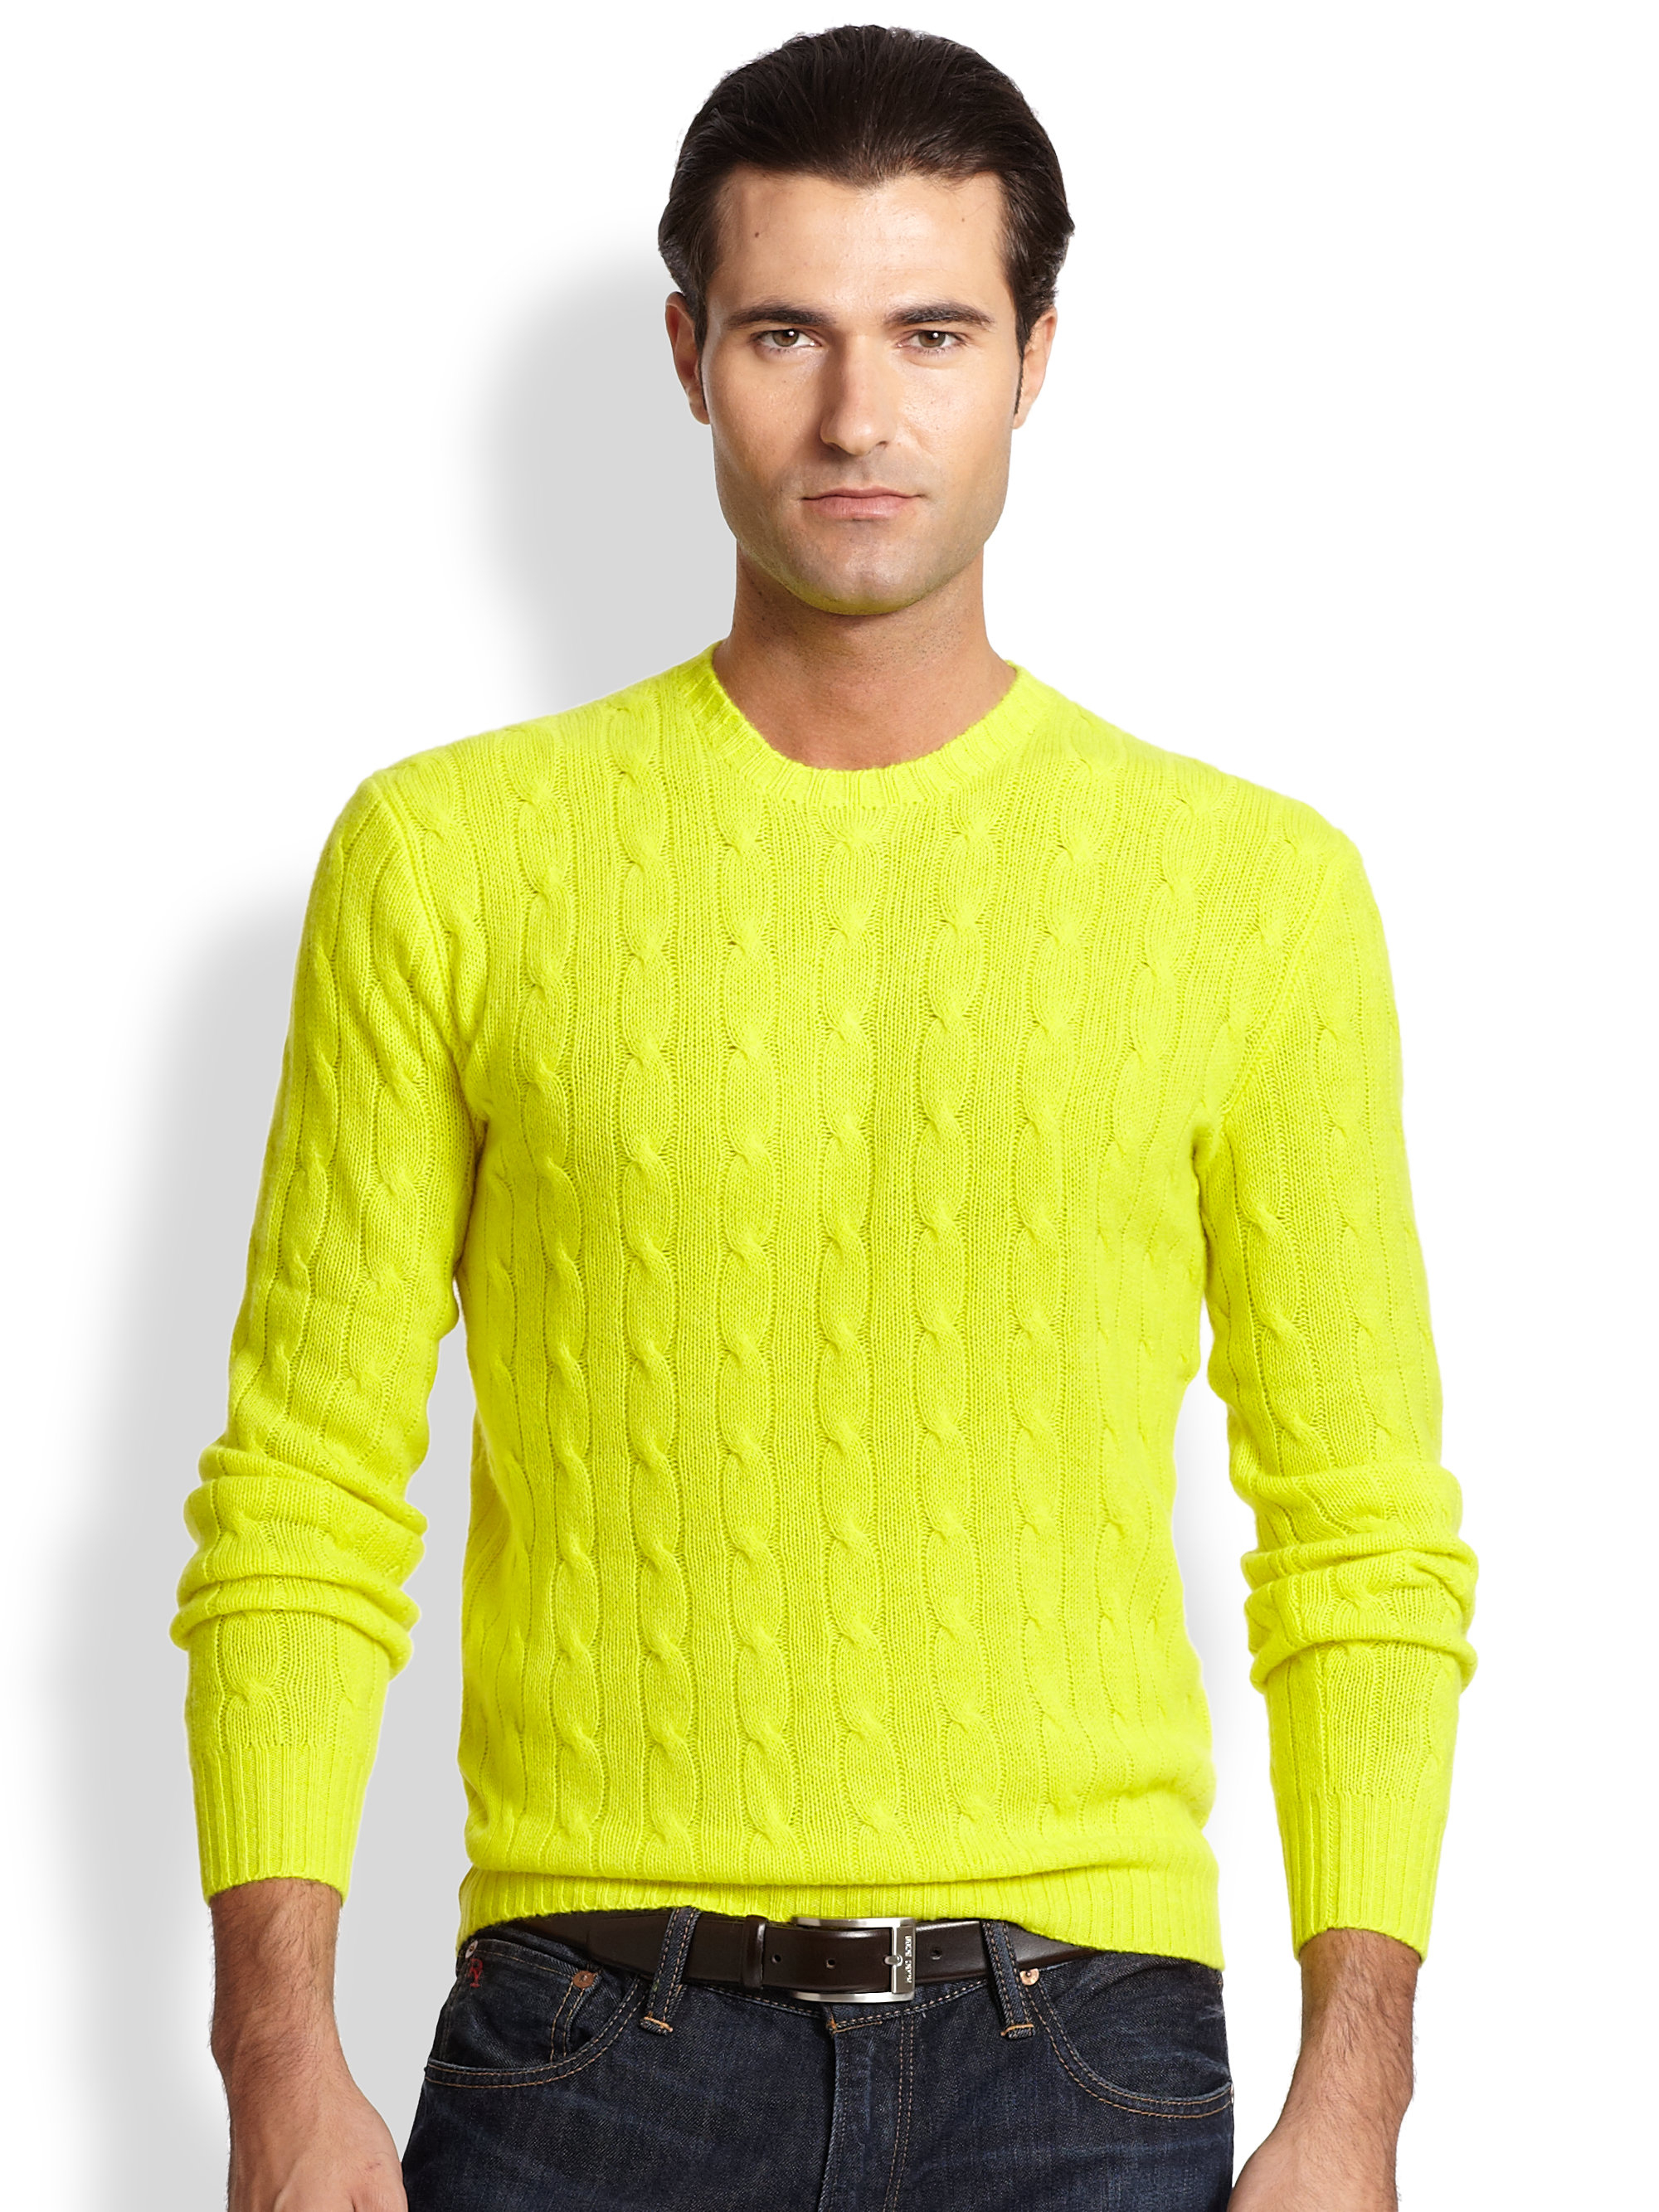 Men'S Yellow Cashmere Sweater - Cashmere Sweater England